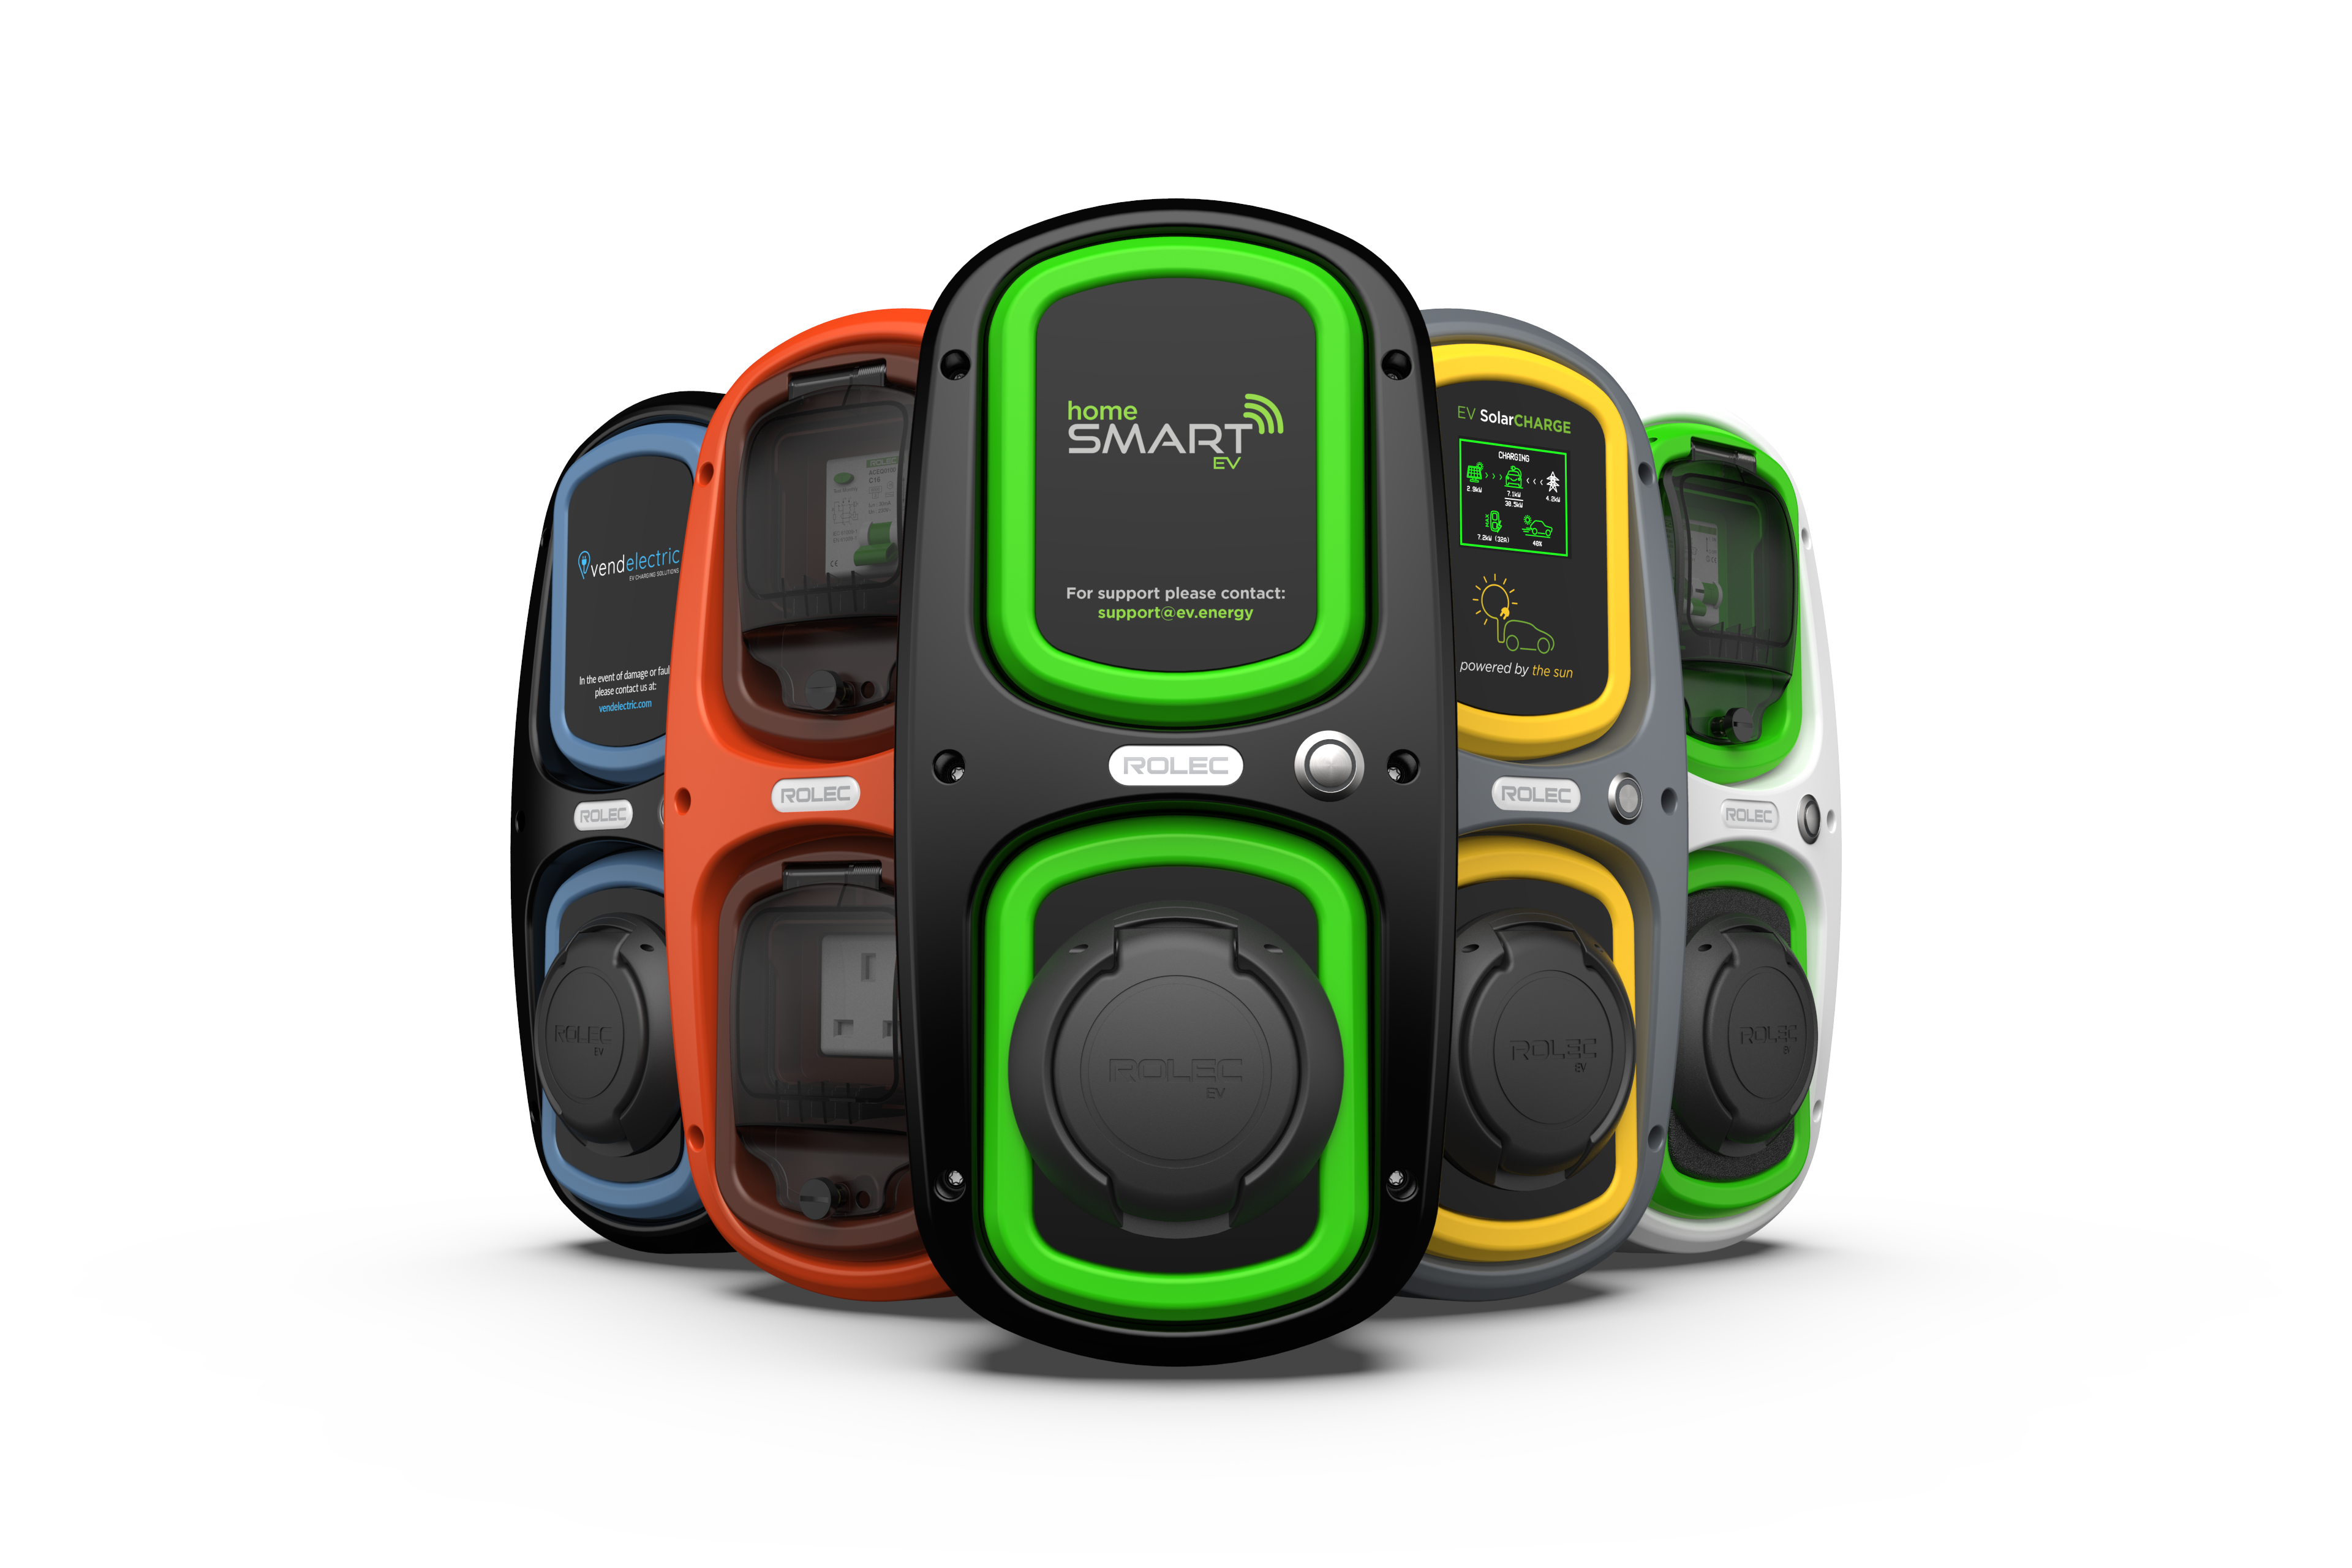 Wallpod Smart Chargers